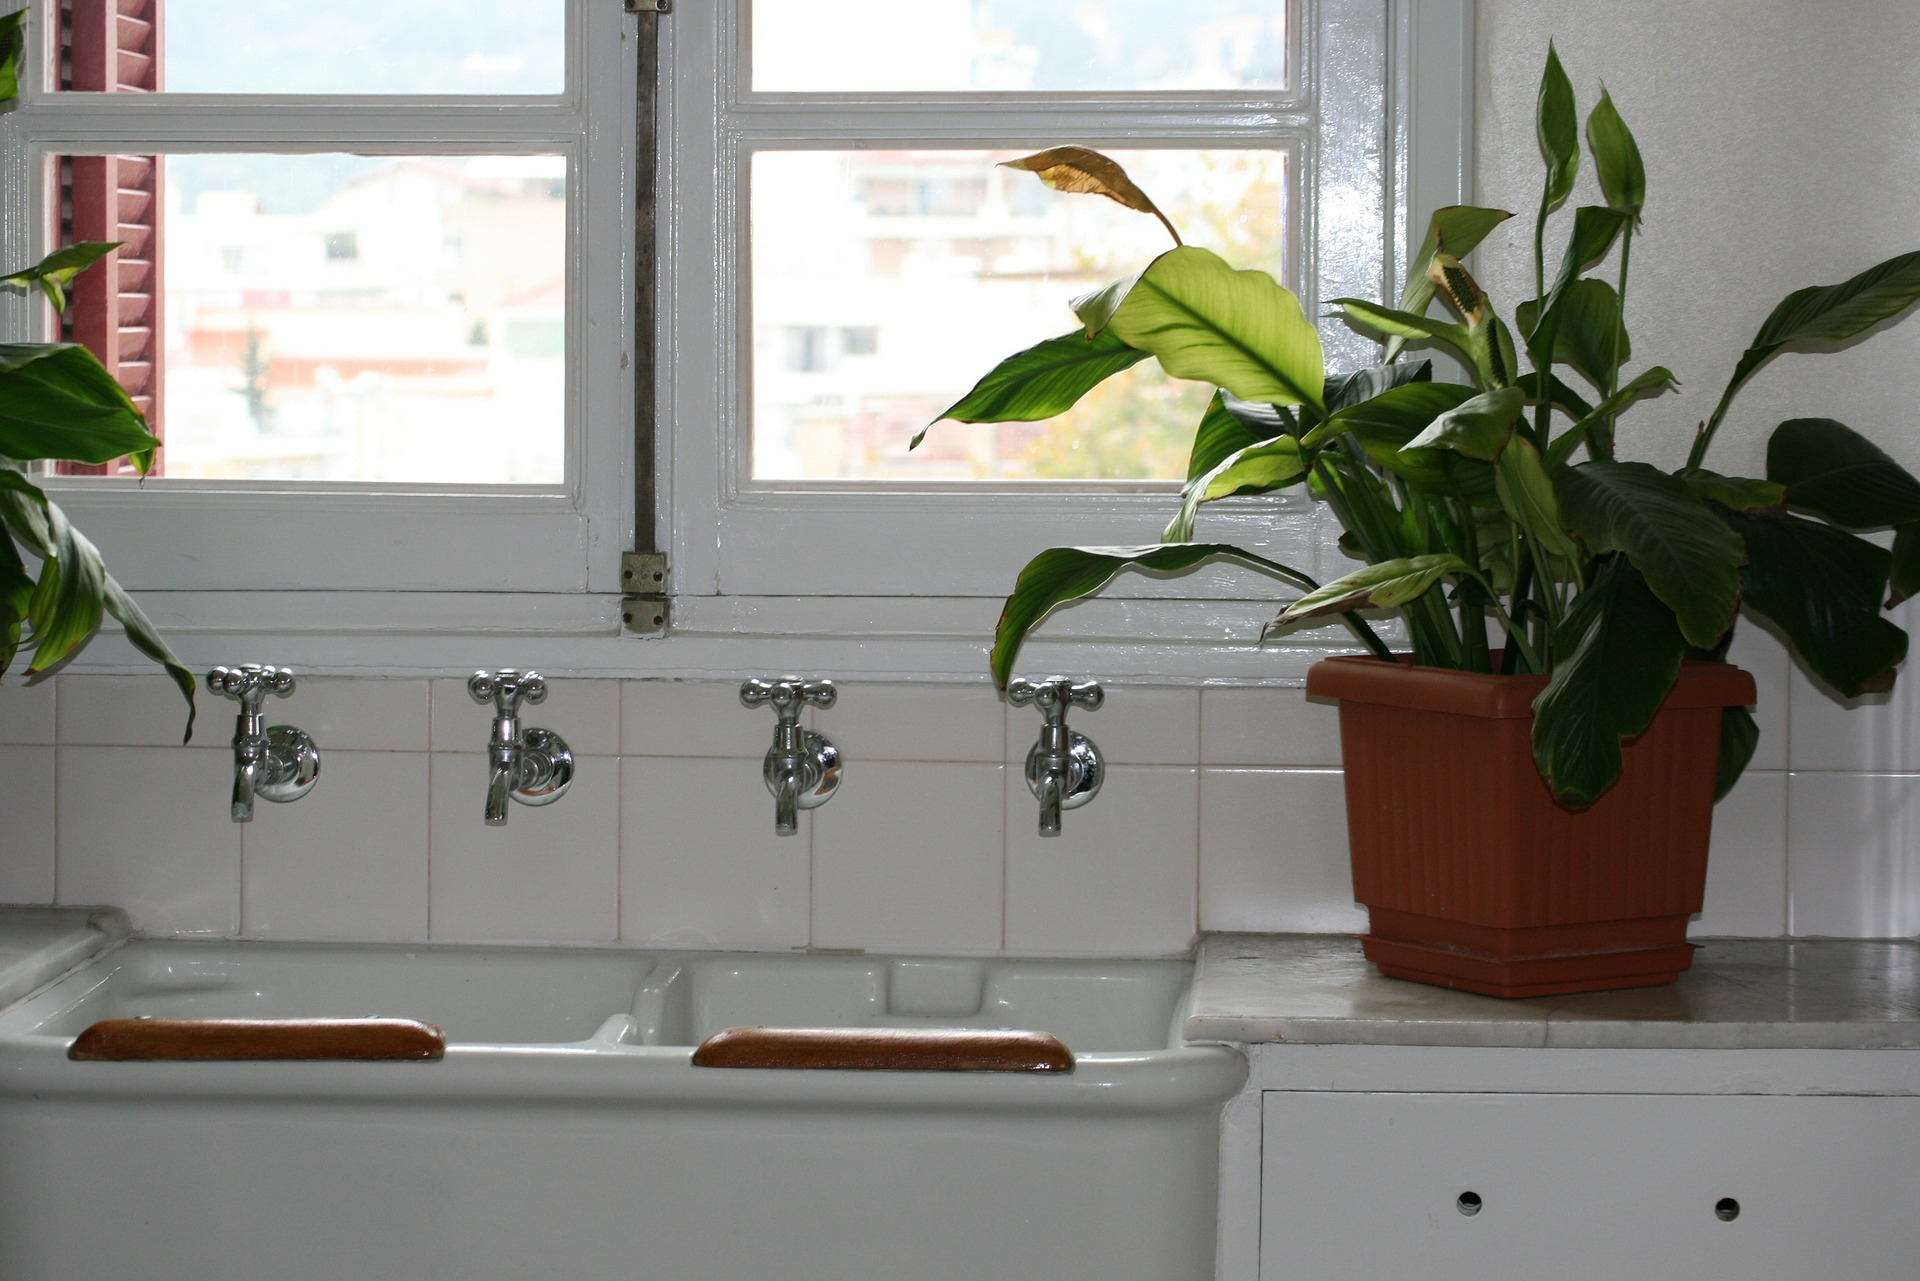 5 Types Of Kitchen Windows To Choose From